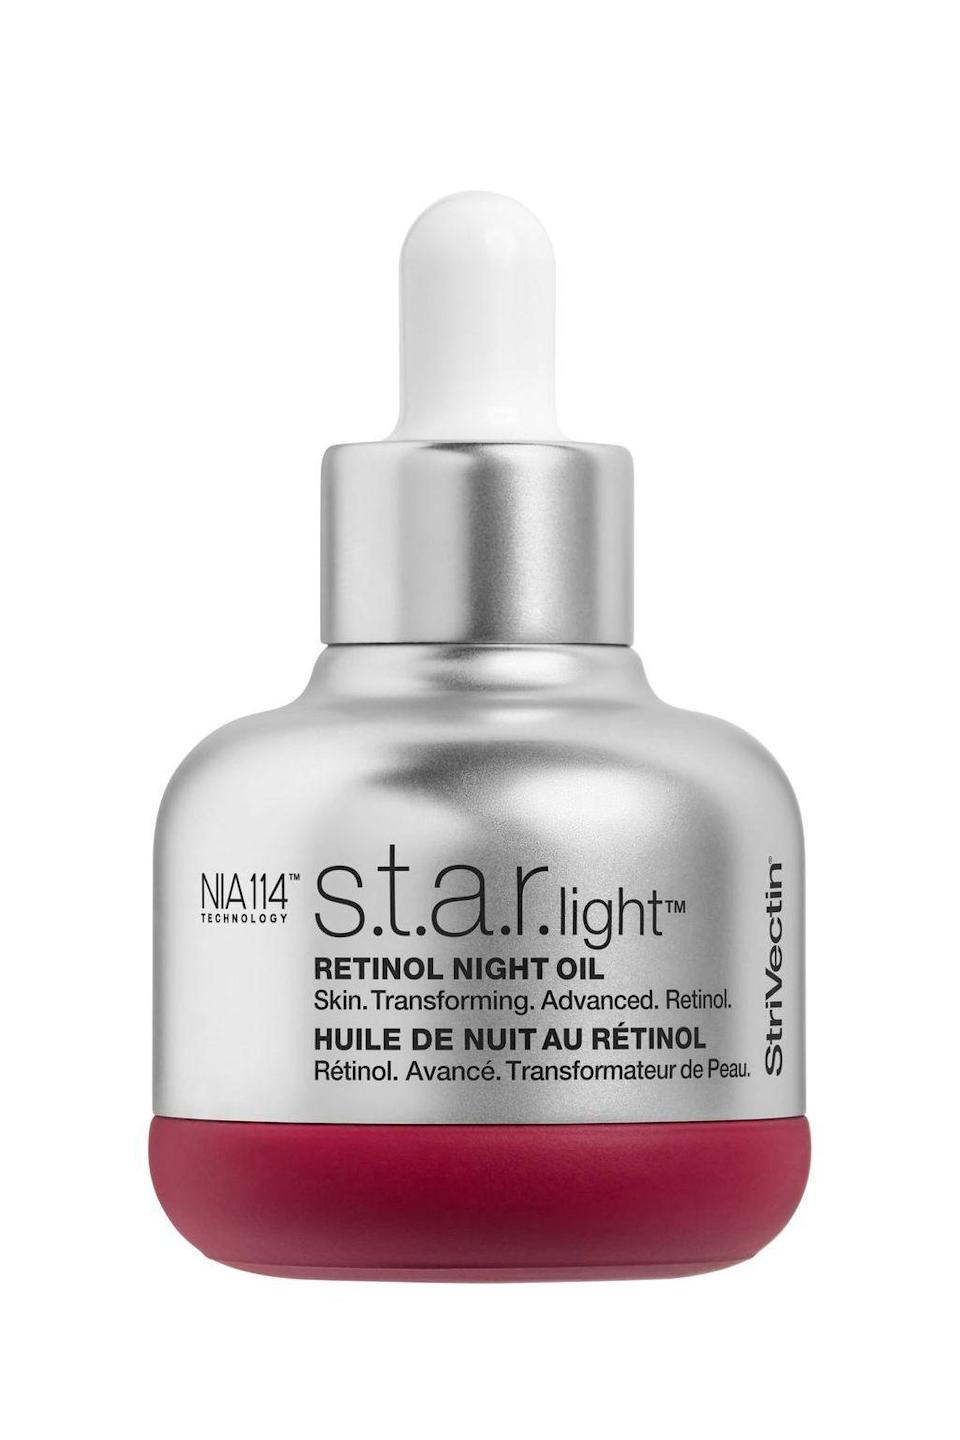 """<p><strong>STRIVECTIN\u003CSUP\u003E\u003C\u002FSUP\u003E</strong></p><p>nordstrom.com</p><p><strong>$99.00</strong></p><p><a href=""""https://go.redirectingat.com?id=74968X1596630&url=https%3A%2F%2Fshop.nordstrom.com%2Fs%2Fstrivectin-star-light-retinol-night-oil%2F5086331&sref=https%3A%2F%2Fwww.marieclaire.com%2Fbeauty%2Fg33597196%2Fbest-retinol-creams%2F"""" rel=""""nofollow noopener"""" target=""""_blank"""" data-ylk=""""slk:SHOP IT"""" class=""""link rapid-noclick-resp"""">SHOP IT</a></p><p>A single drop of this dry-finish oil can give your nightly moisturizer an anti-aging boos, and its chia seed oil and plant-derived squalene helps hydrate the skin while it's being exfoliated. </p>"""